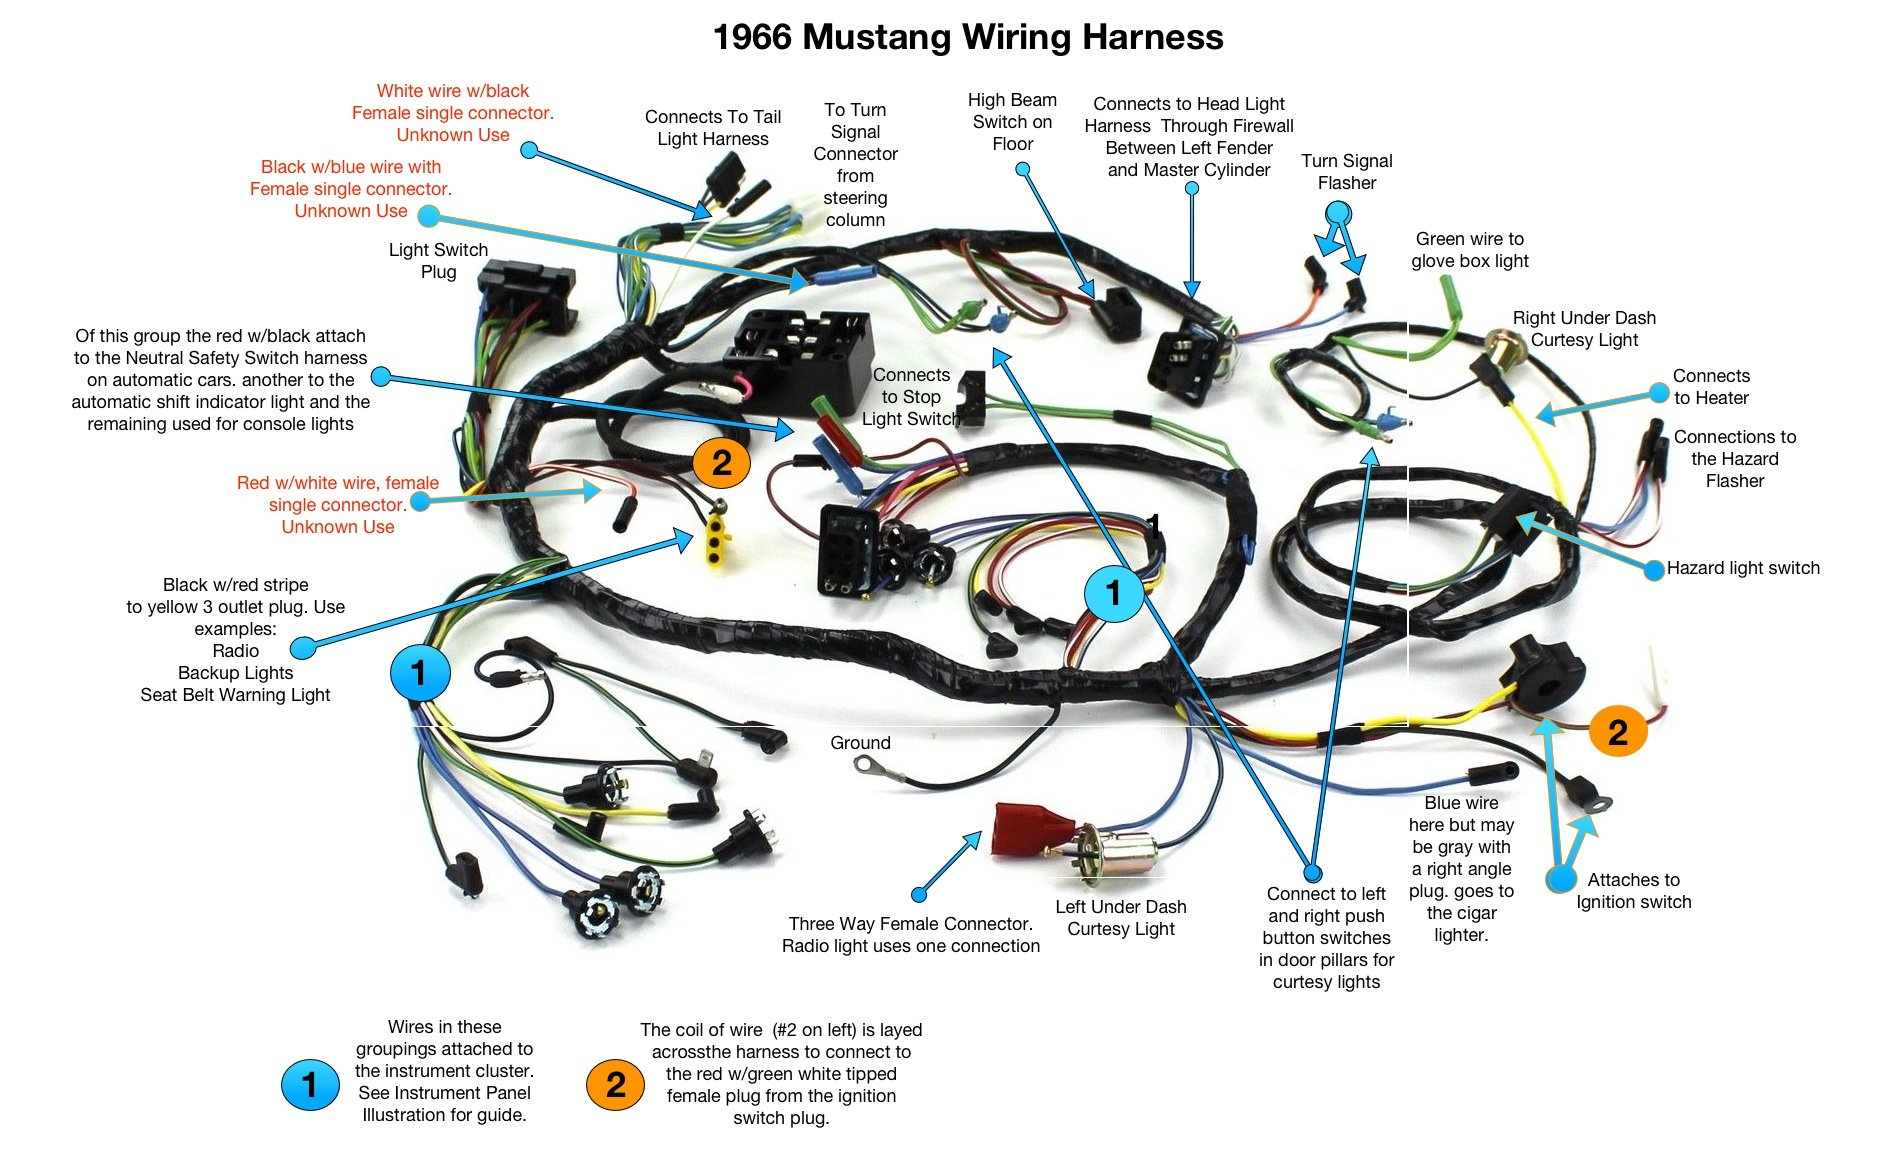 66 Wiring Harness Diagram - Ford Mustang Forum